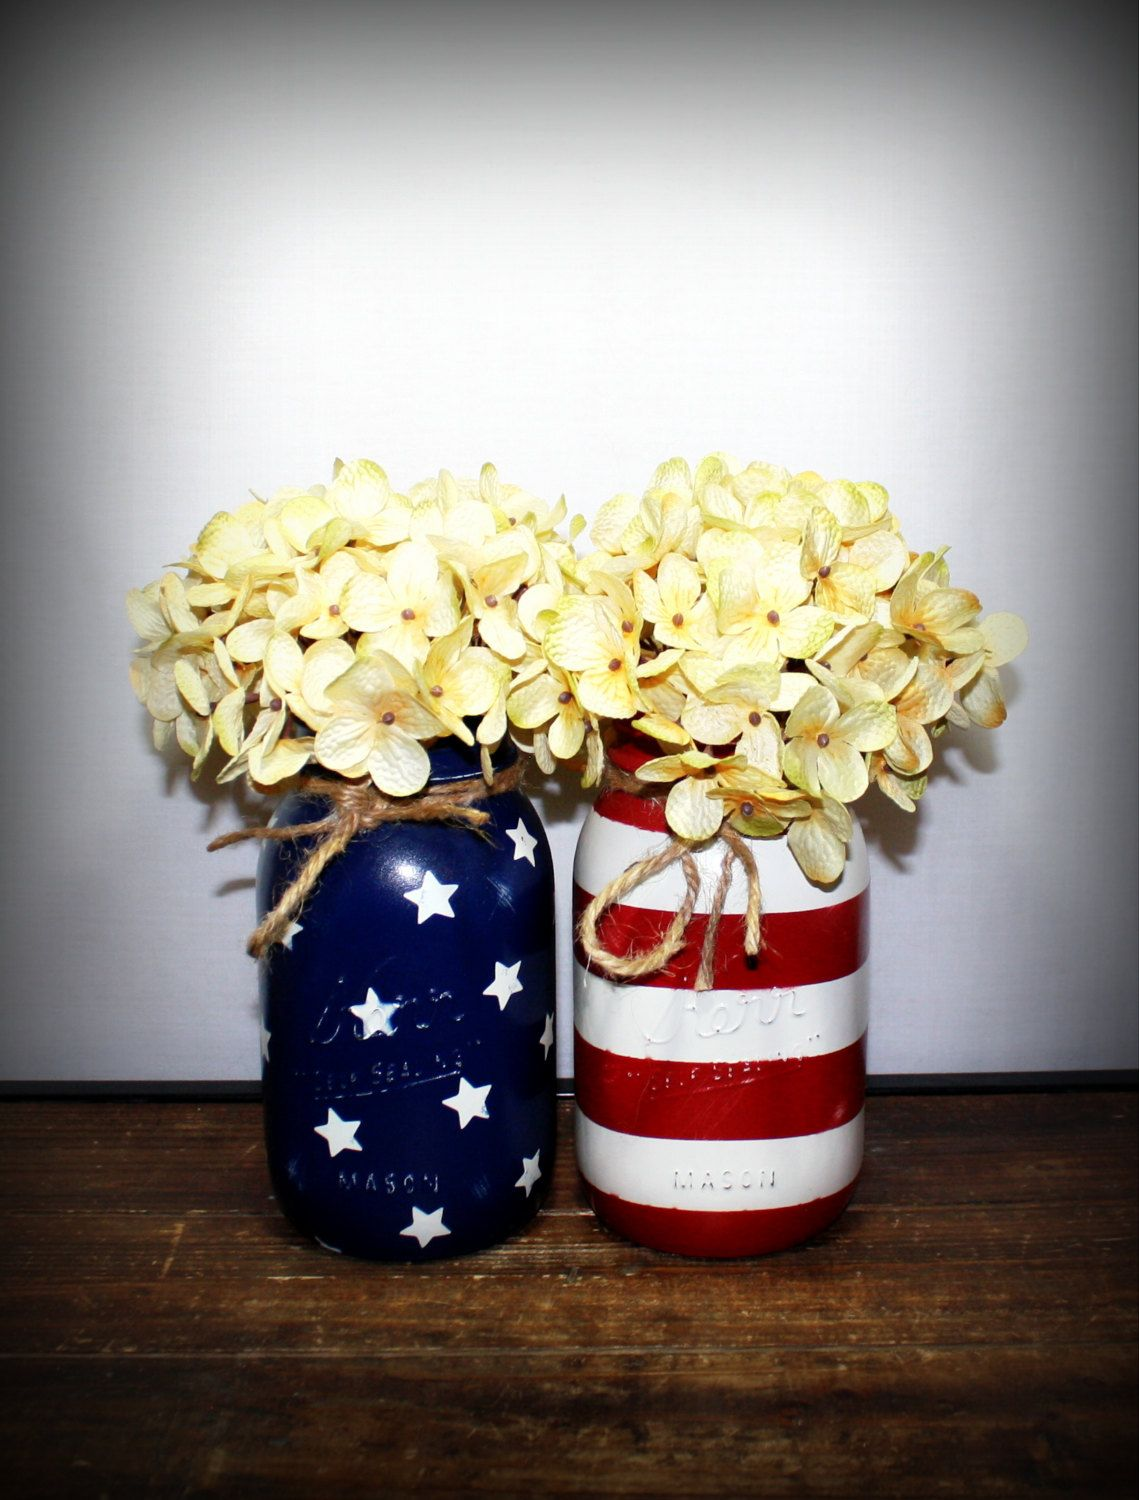 American flag kerr mason jar made in america red white and blue